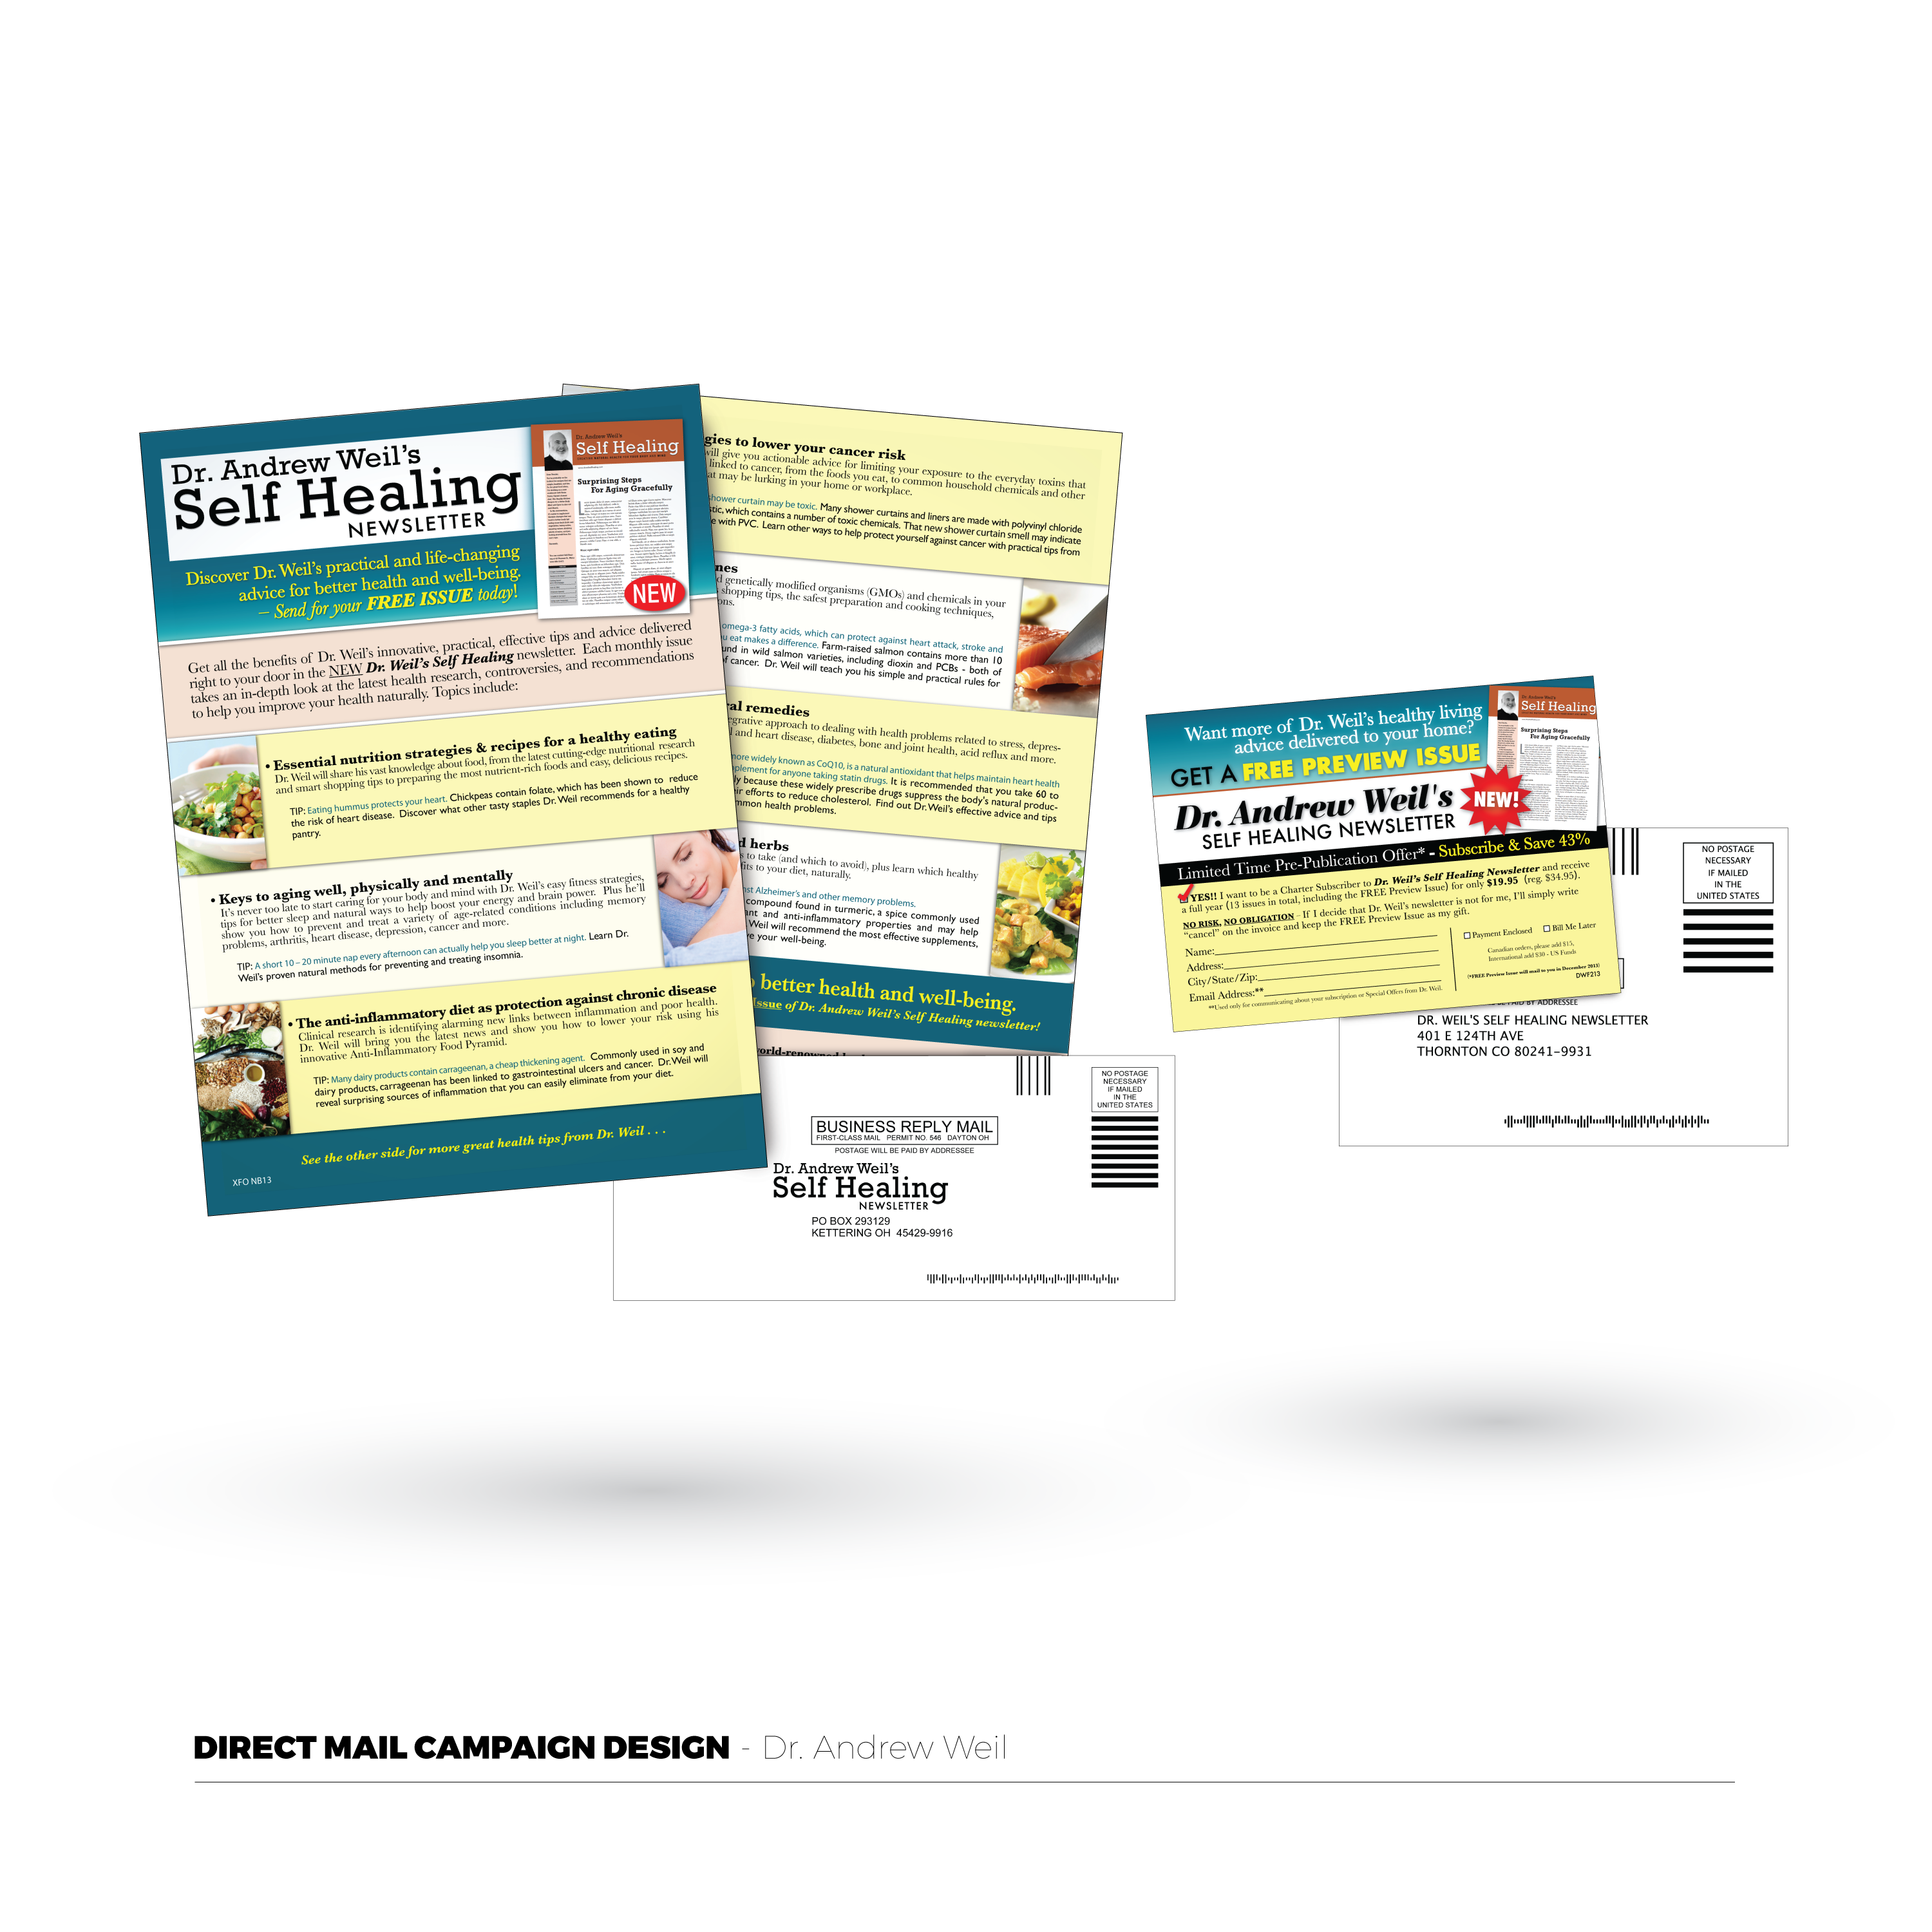 Dr. Andrew Weil Direct Mail